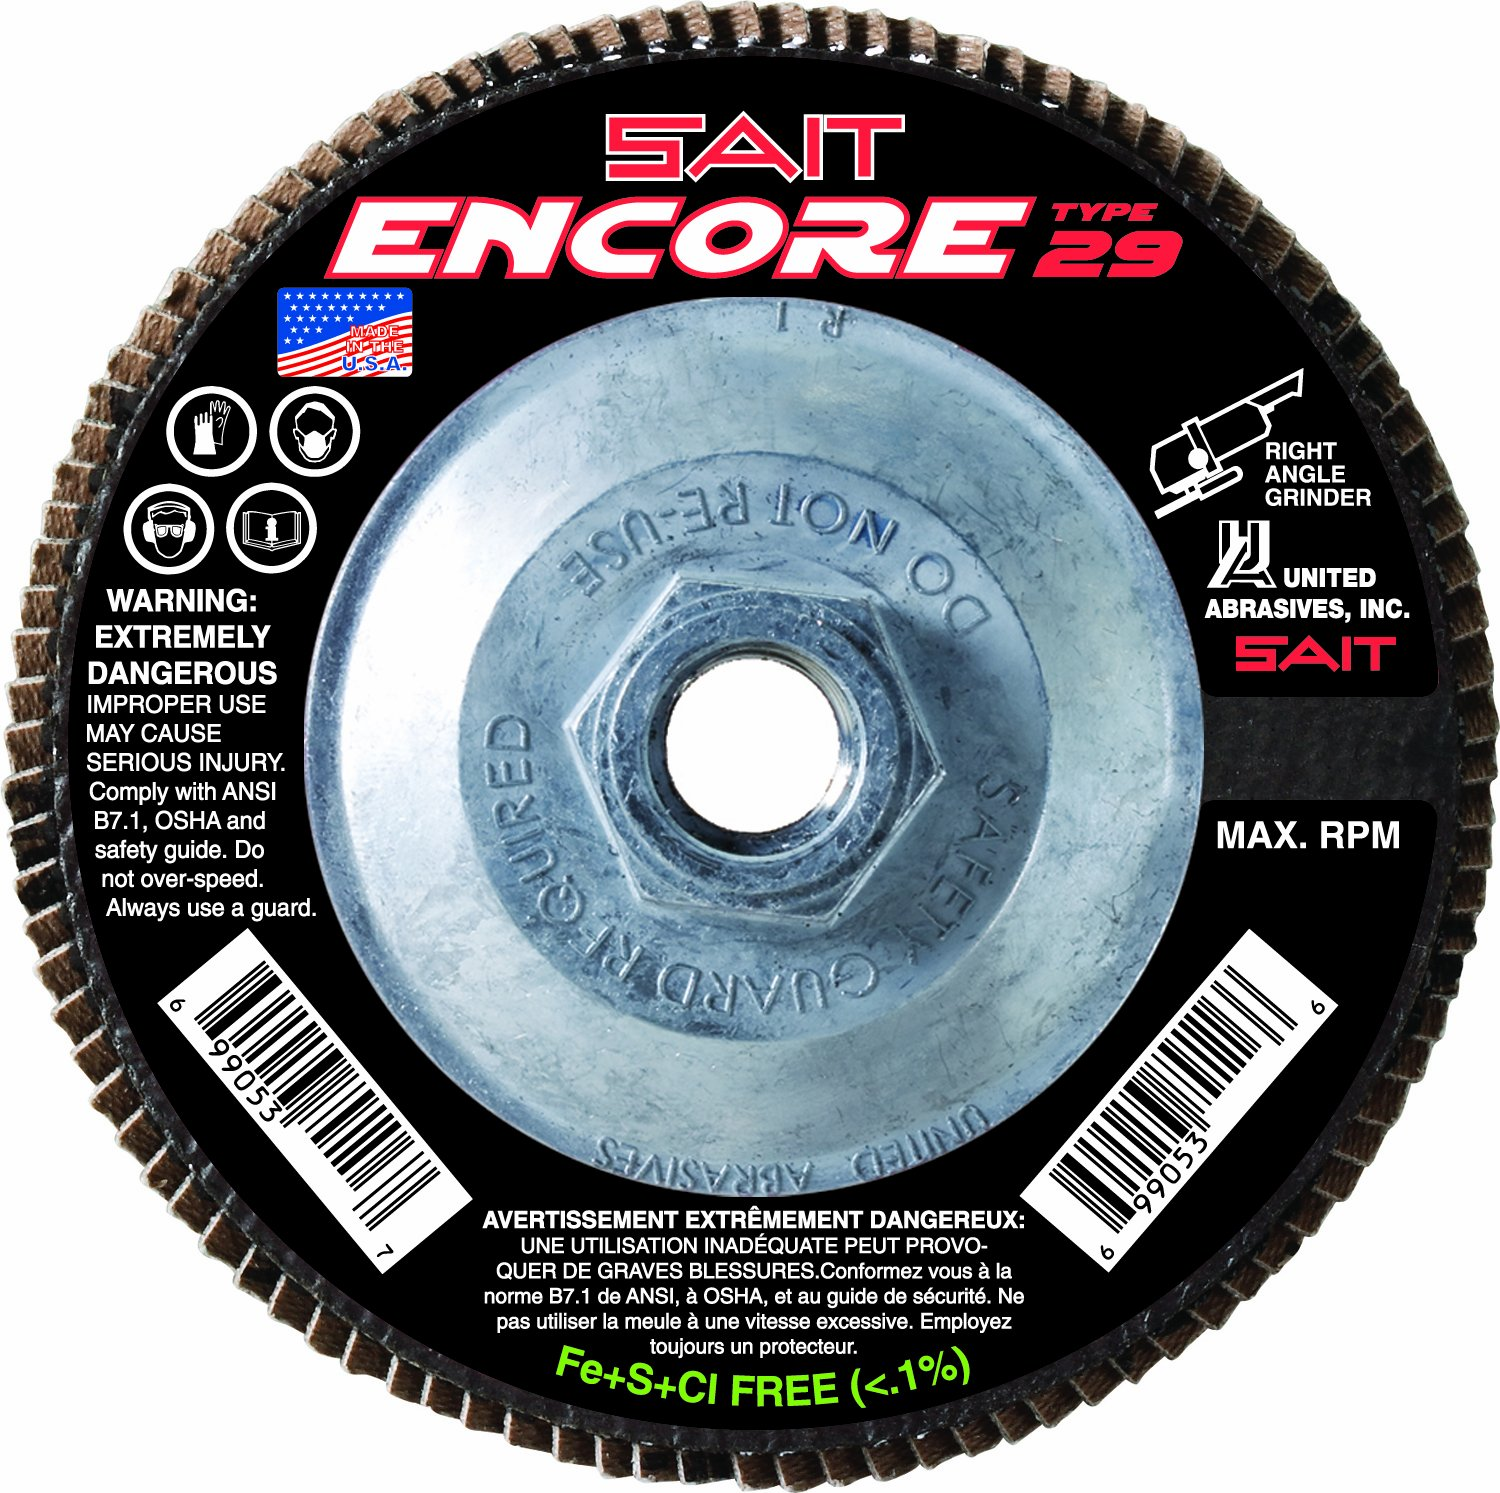 United Abrasives- SAIT 79118 Encore Type 29 Flap Disc, 4-1/2 X 5/8-11 Z 60X, 10 Pack